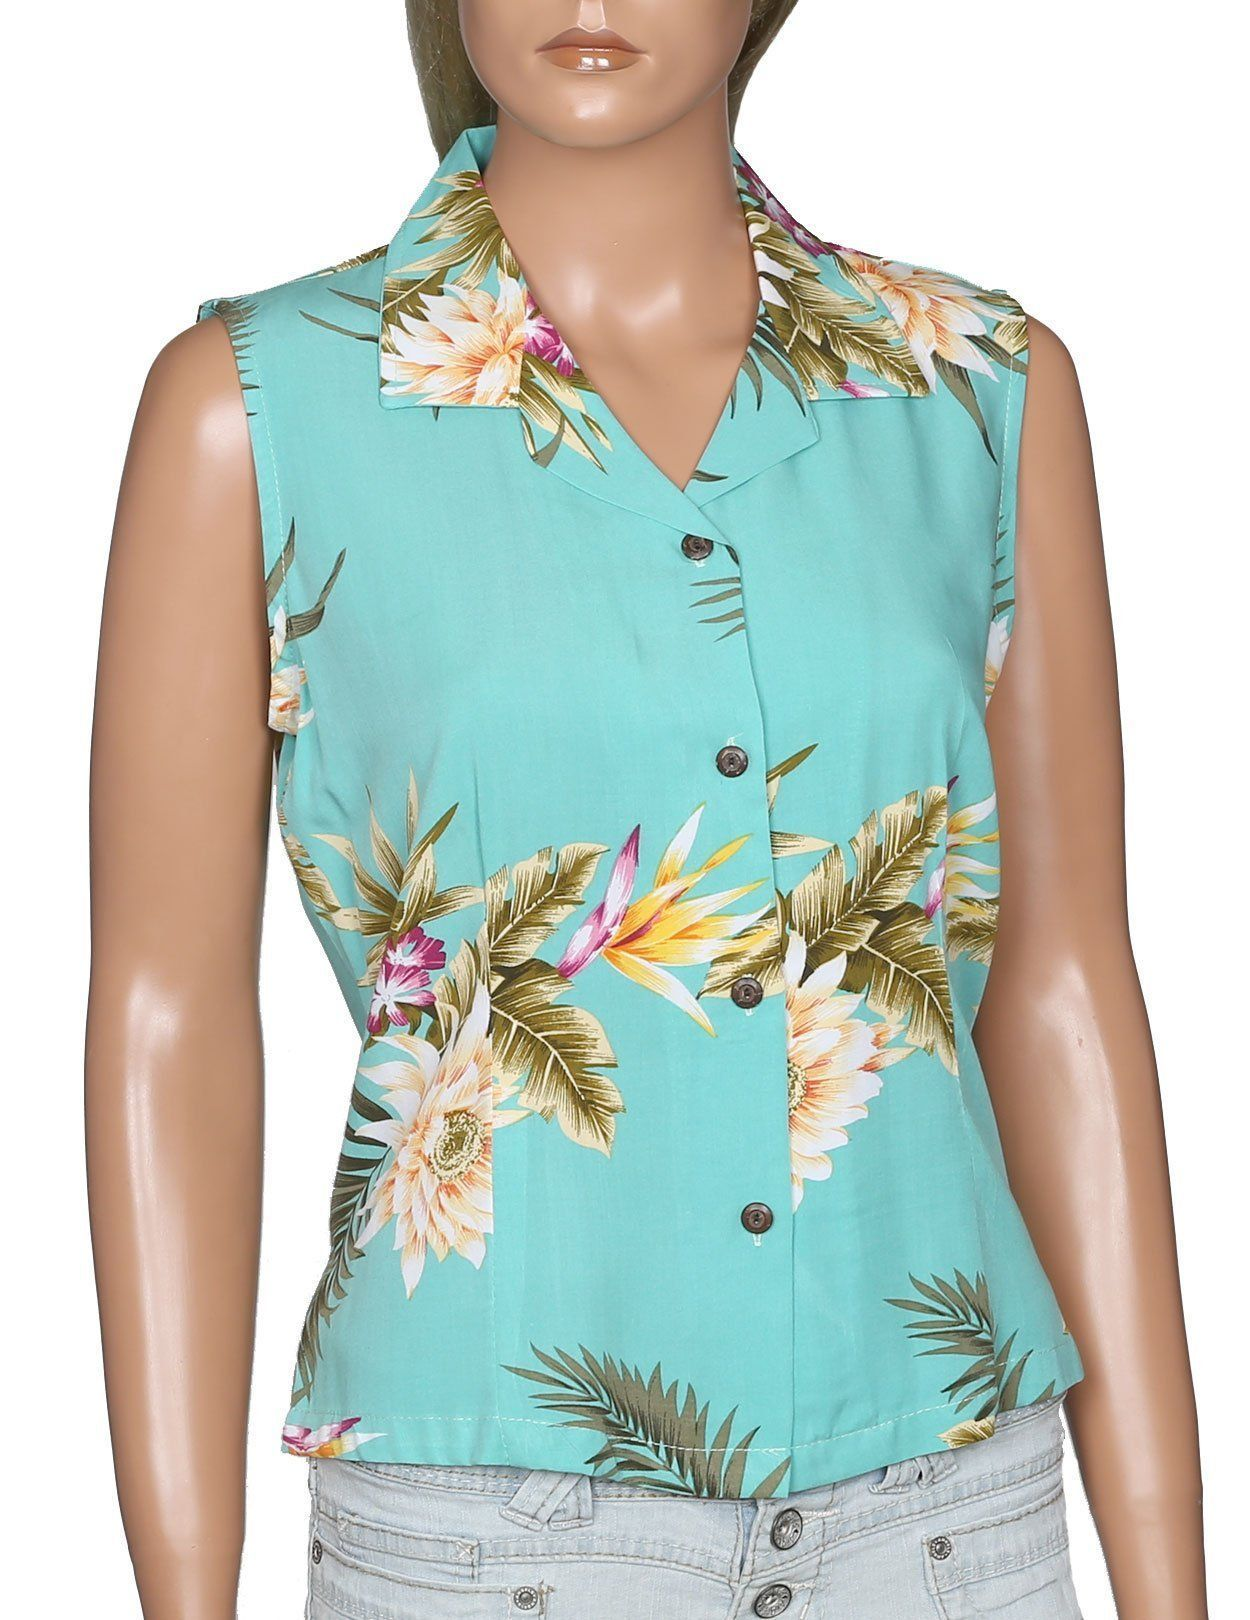 b6b967c4a3c03f Ceres Green - Sleeveless Blouse - 100% Rayon. Find this Pin and more on  Products by All Clothes Hawaiian.